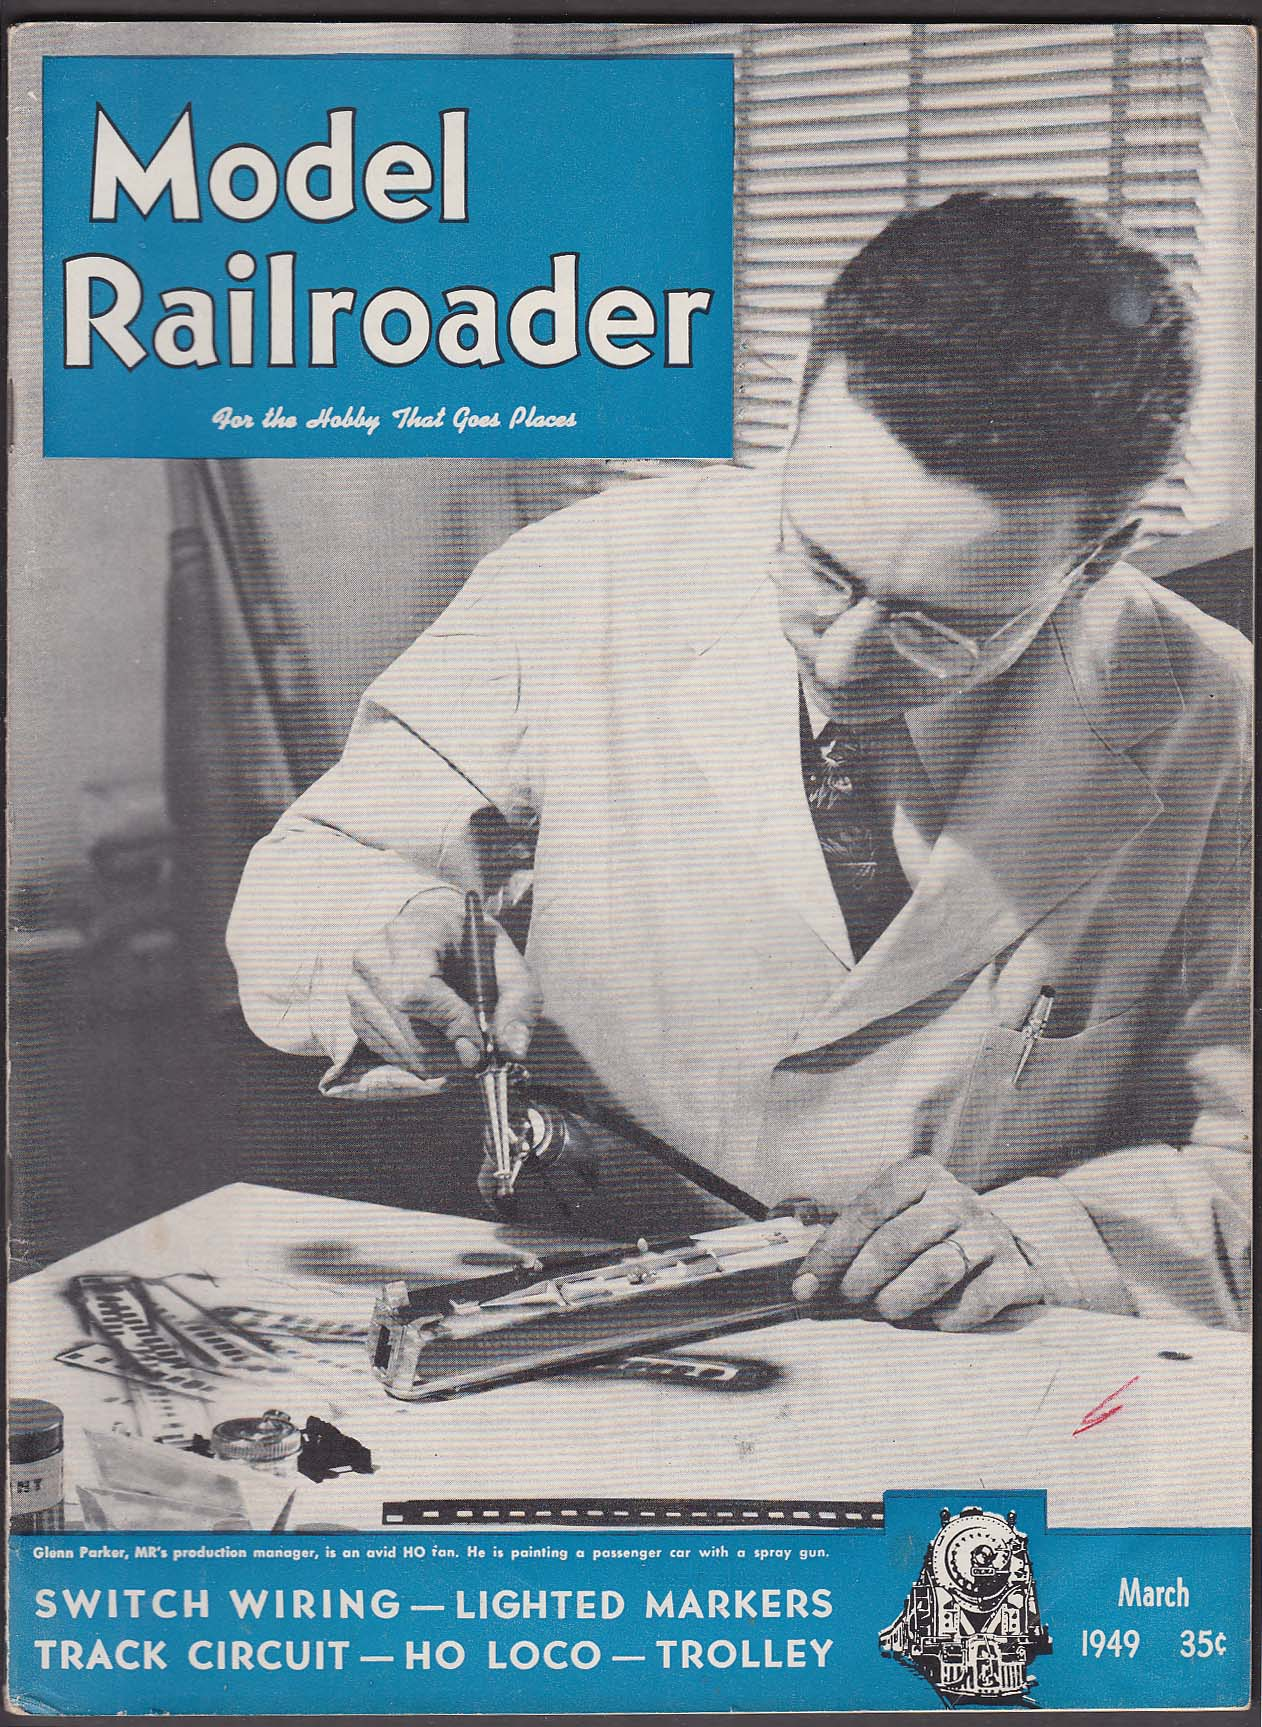 The Jumping Frog Rare Used And Out Of Print Books Magazines Ho Track Wiring Model Railroader Switch Lighted Markers Circuit Loco 3 1949